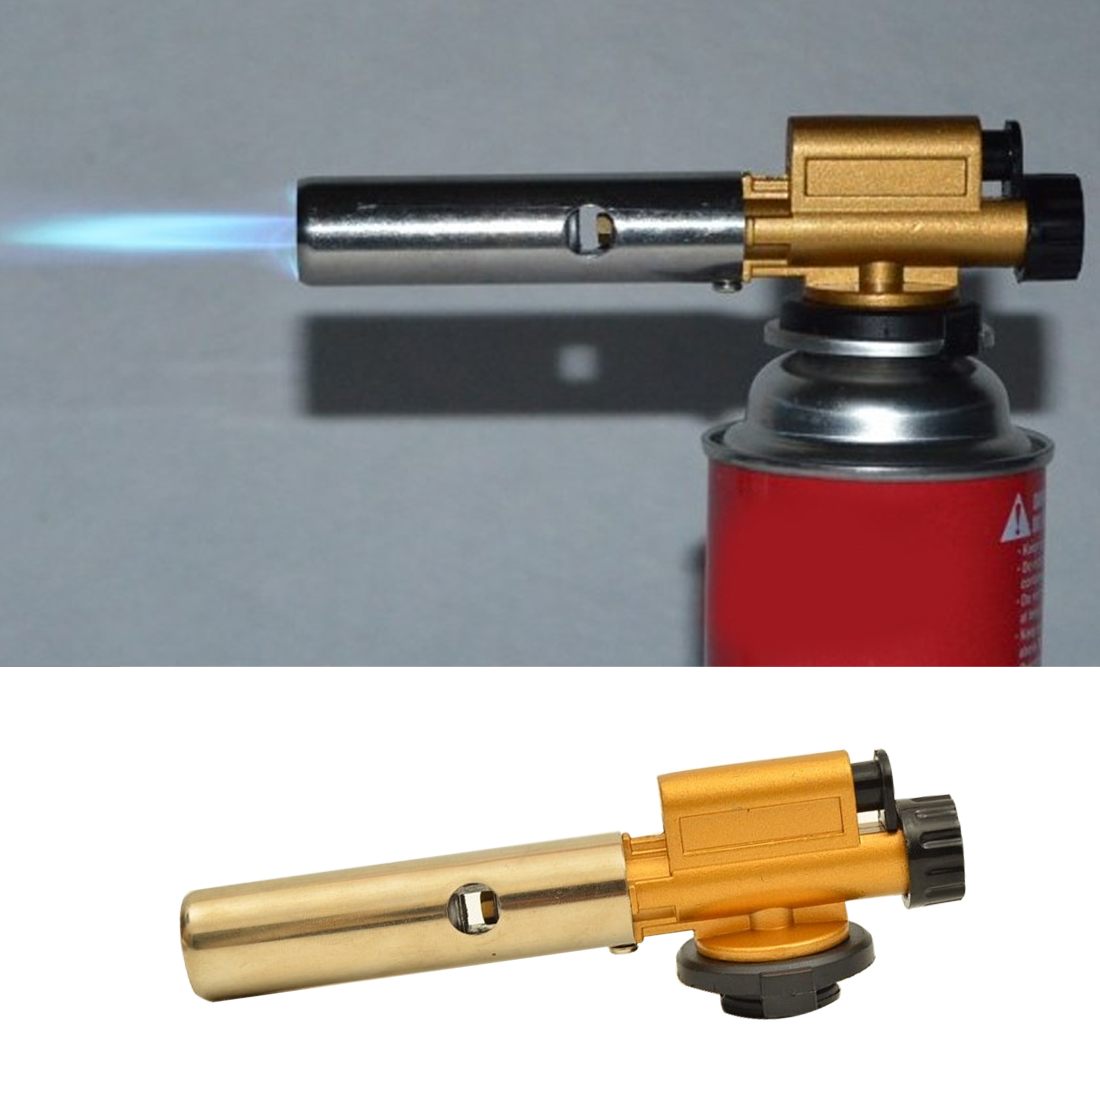 803 Metal Electronic Ignition Copper Flame Gun Butane Gas Burners Maker Torch Lighter For Outdoor Camping Picnic Cooking Welding